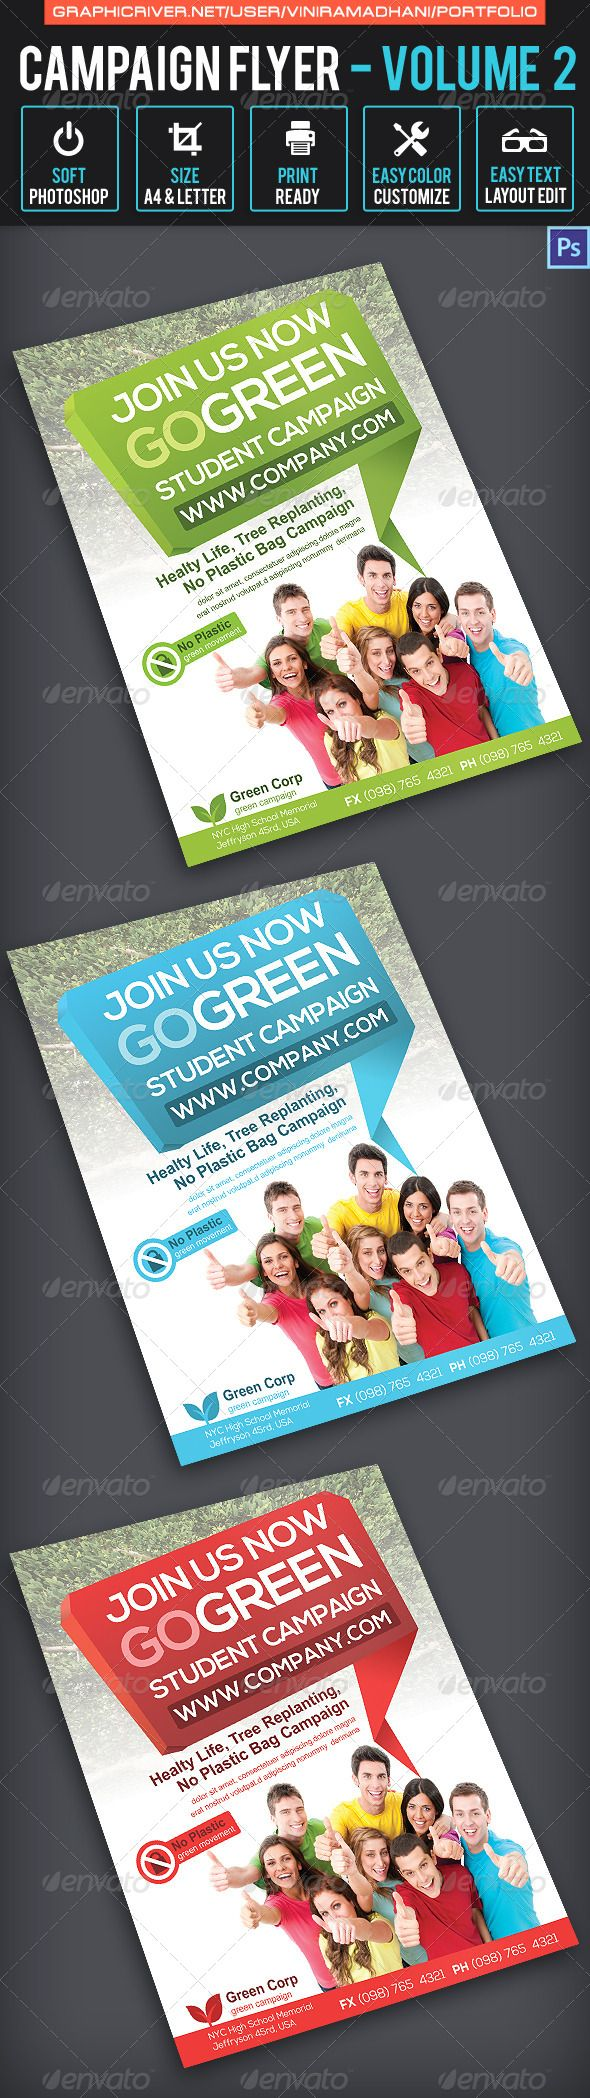 Campaign Flyer  Volume   Psd Templates Business Flyers And